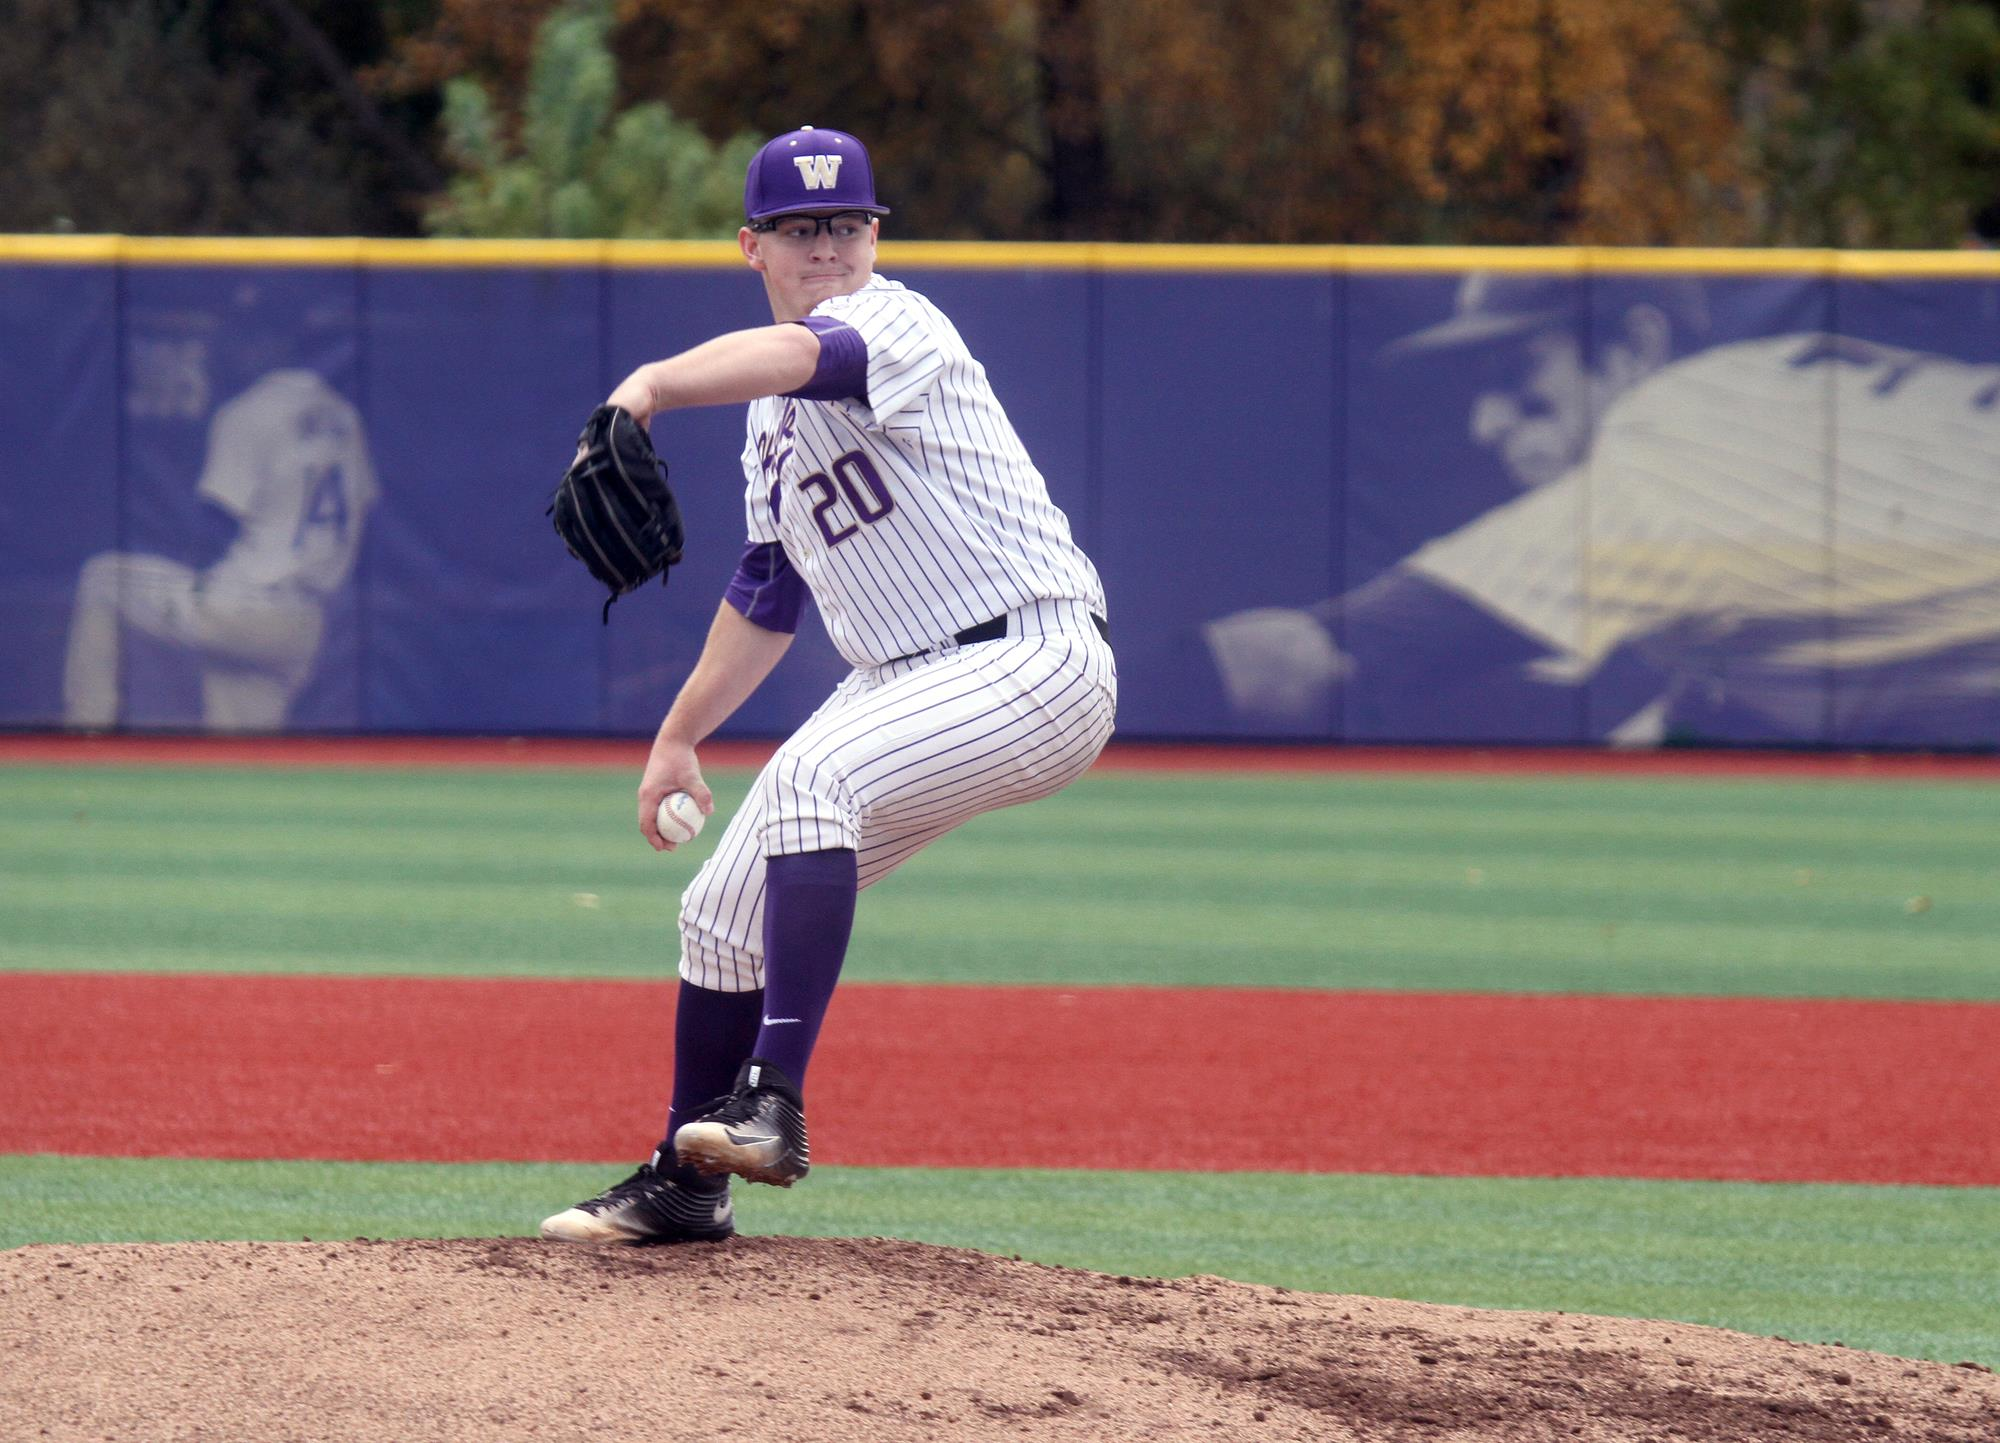 Vauxhall Academy alum Josh Burgmann (Nanaimo, BC) tossed eight scoreless innings to help the Washington Huskies secure the sweep of Cal Poly. Burgmann allowed three hits, walked one and punched out 10.